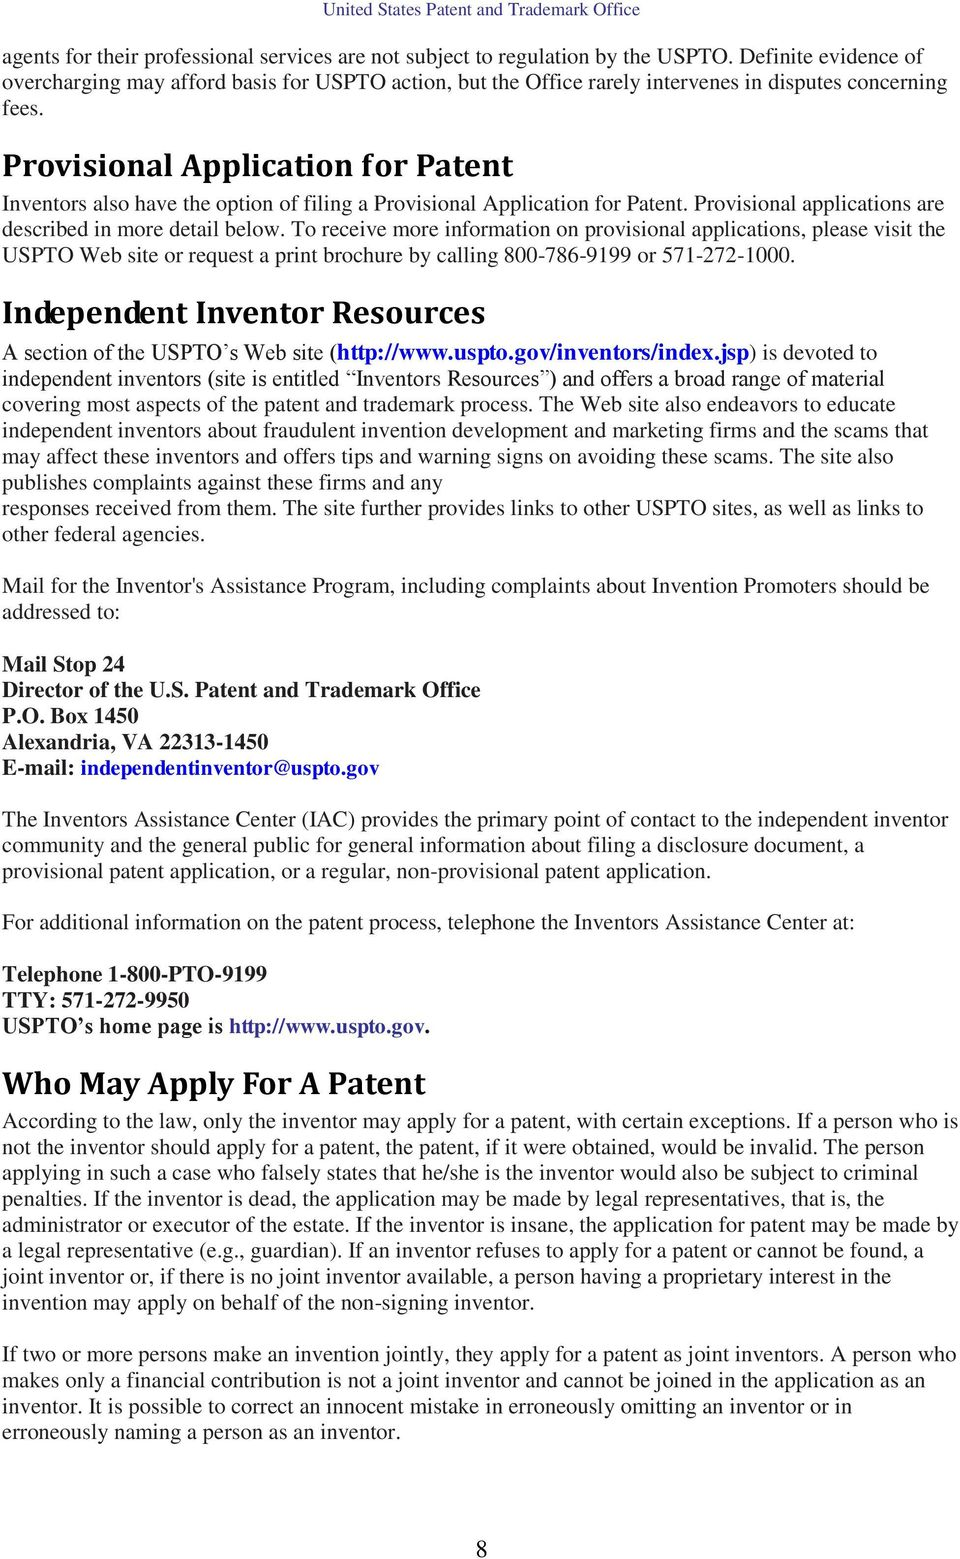 Provisional Application for Patent Inventors also have the option of filing a Provisional Application for Patent. Provisional applications are described in more detail below.